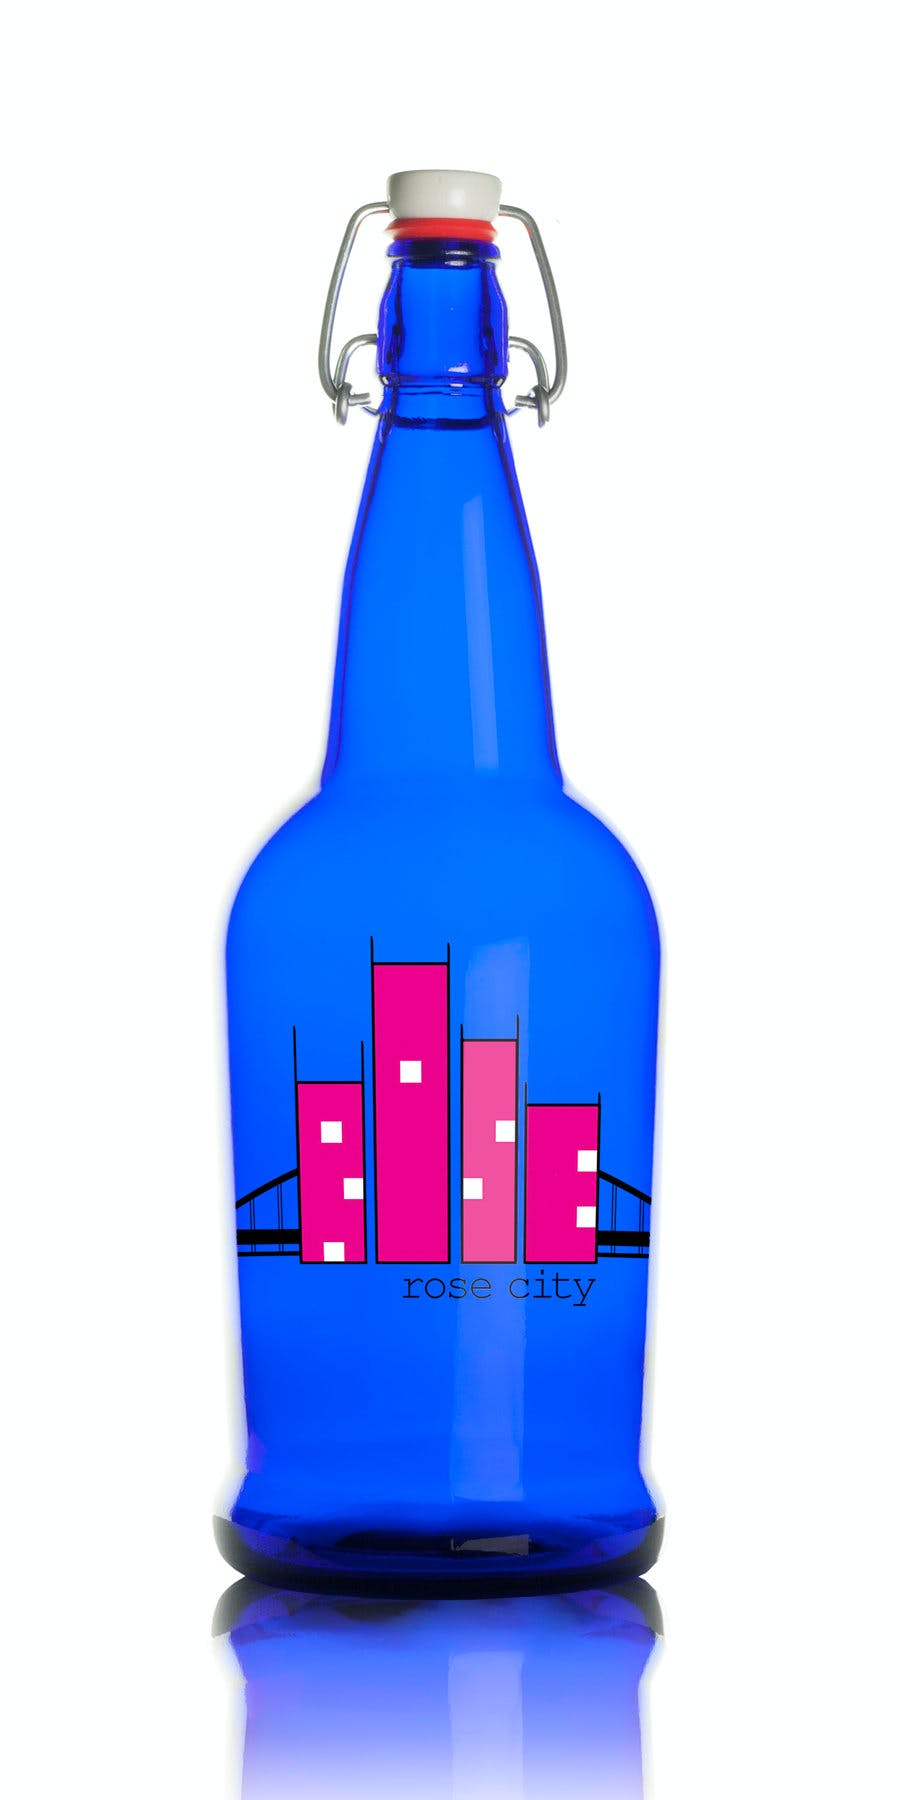 1 Liter Flip Top Growler (Item # SJIIO-JLGLV) Growler sold by InkEasy